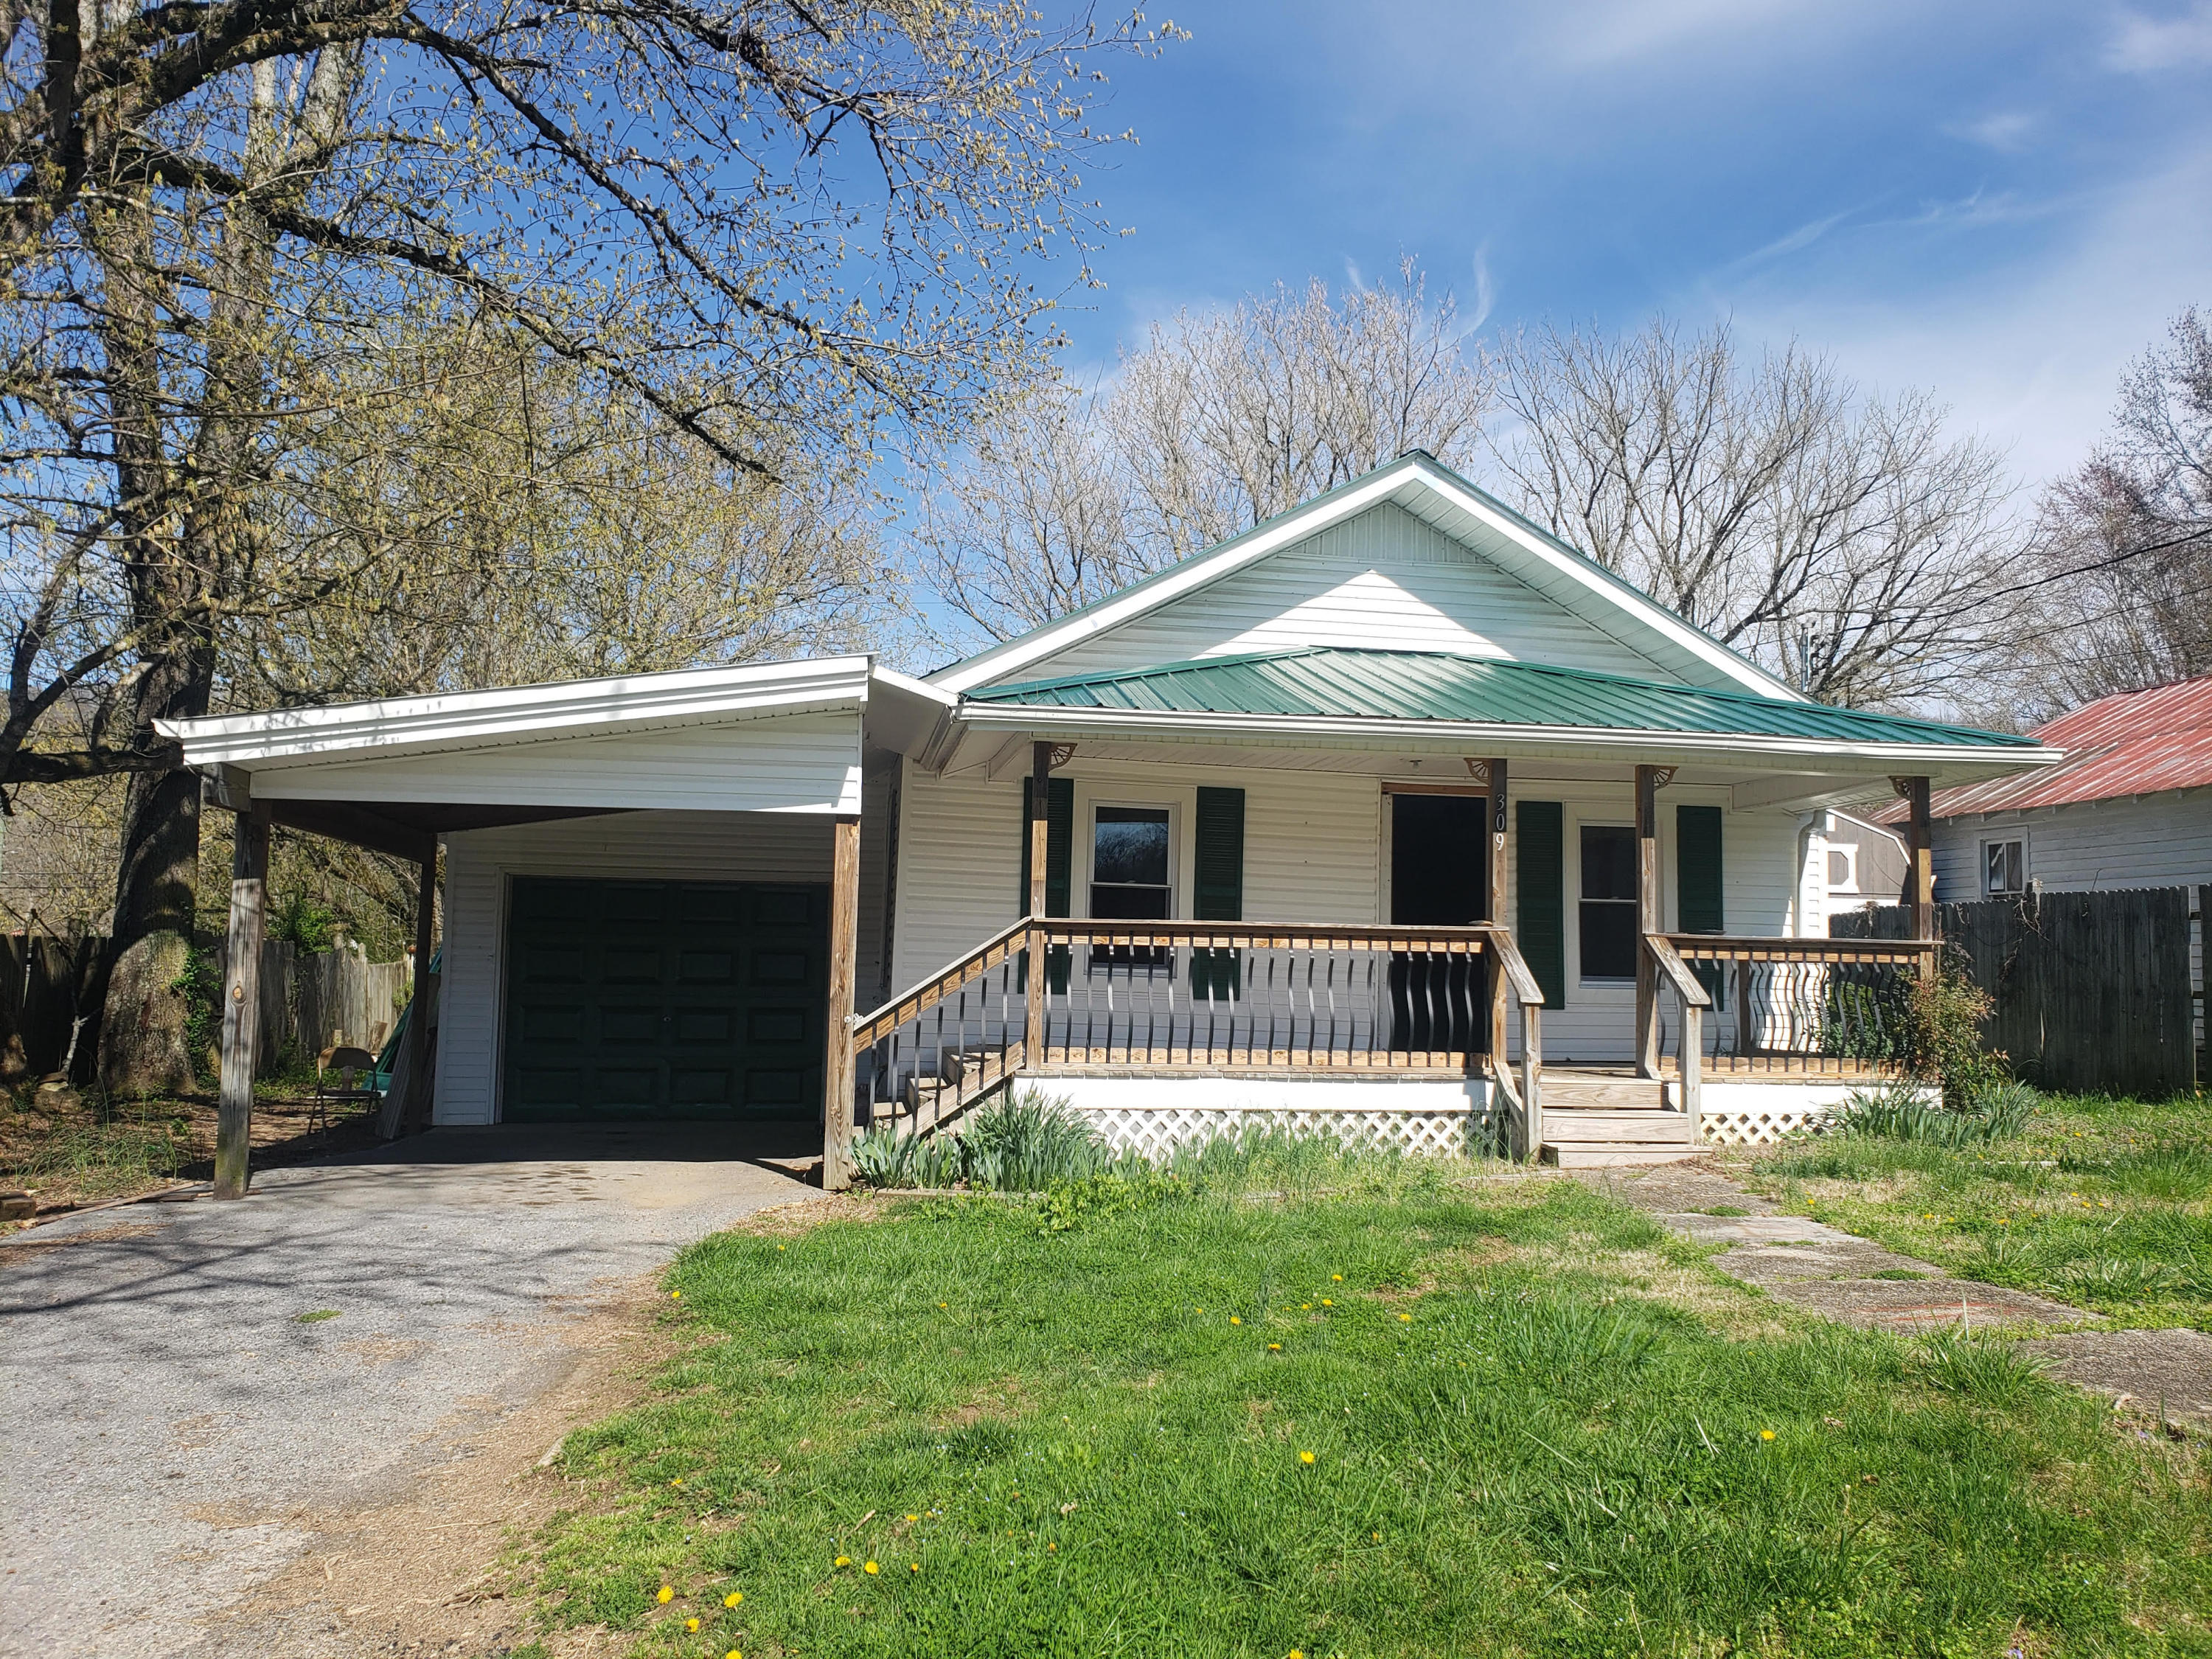 309 Broad, Maynardville, Tennessee, United States 37807, 2 Bedrooms Bedrooms, ,1 BathroomBathrooms,Single Family,For Sale,Broad,1112397